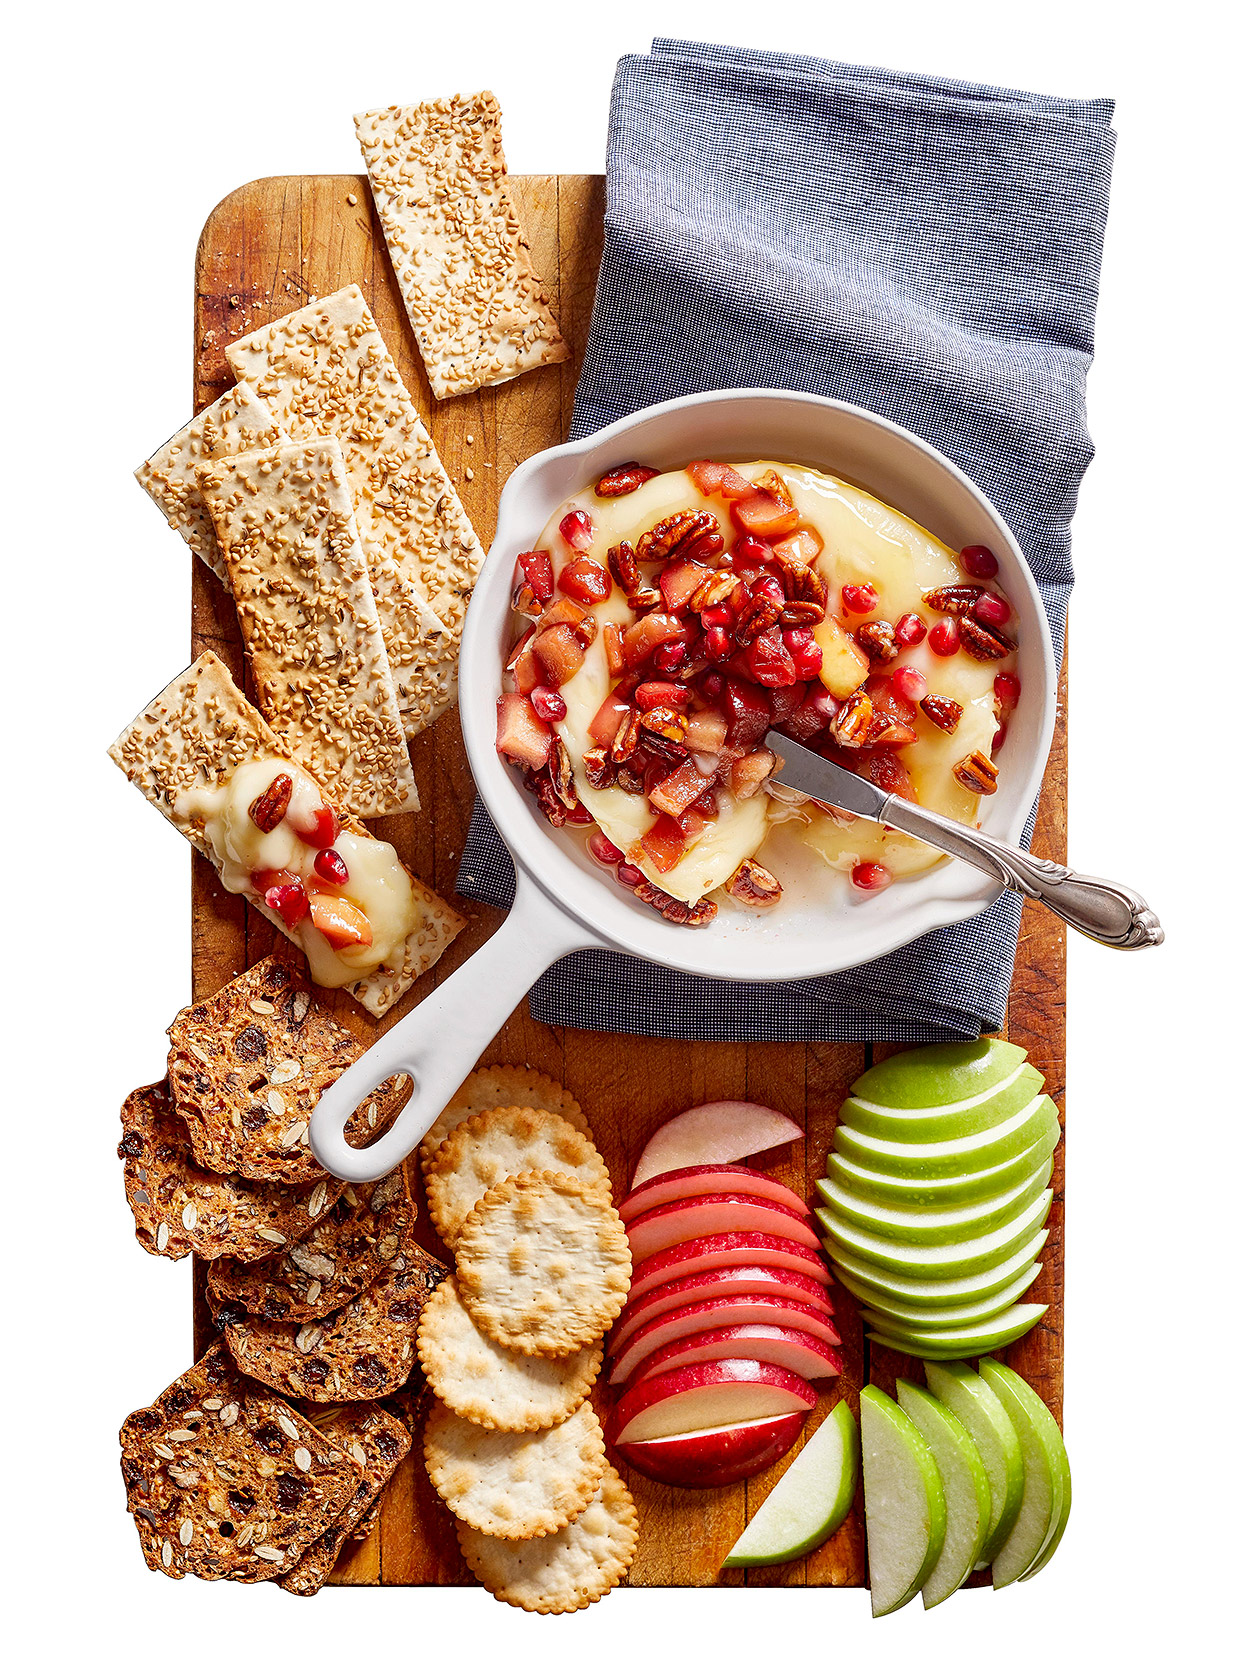 Apple-Pomegranate Topped Brie